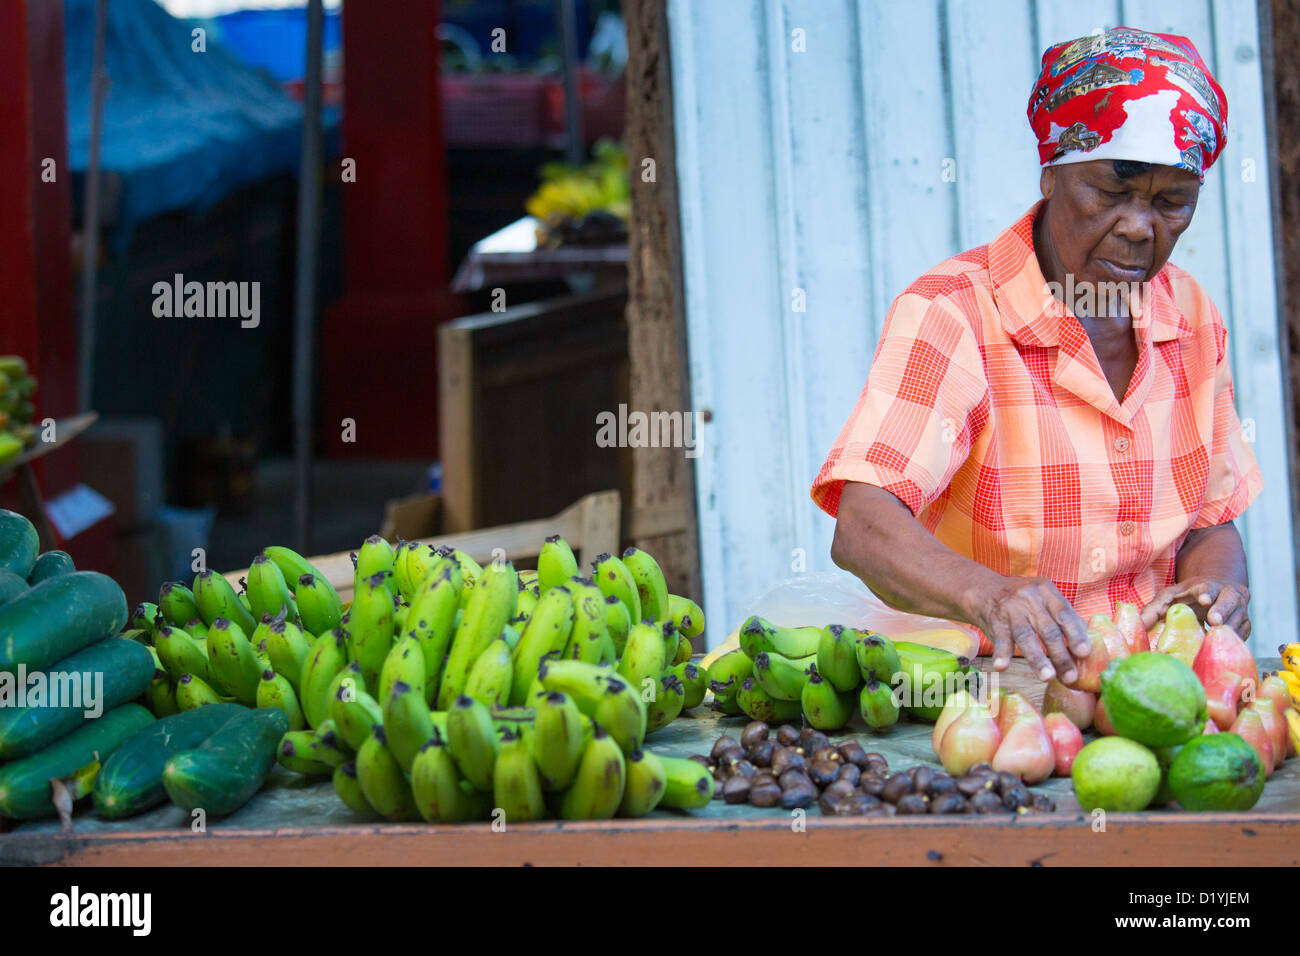 Tropical fruit at the market, Mahe Island, Seychelles - Stock Image